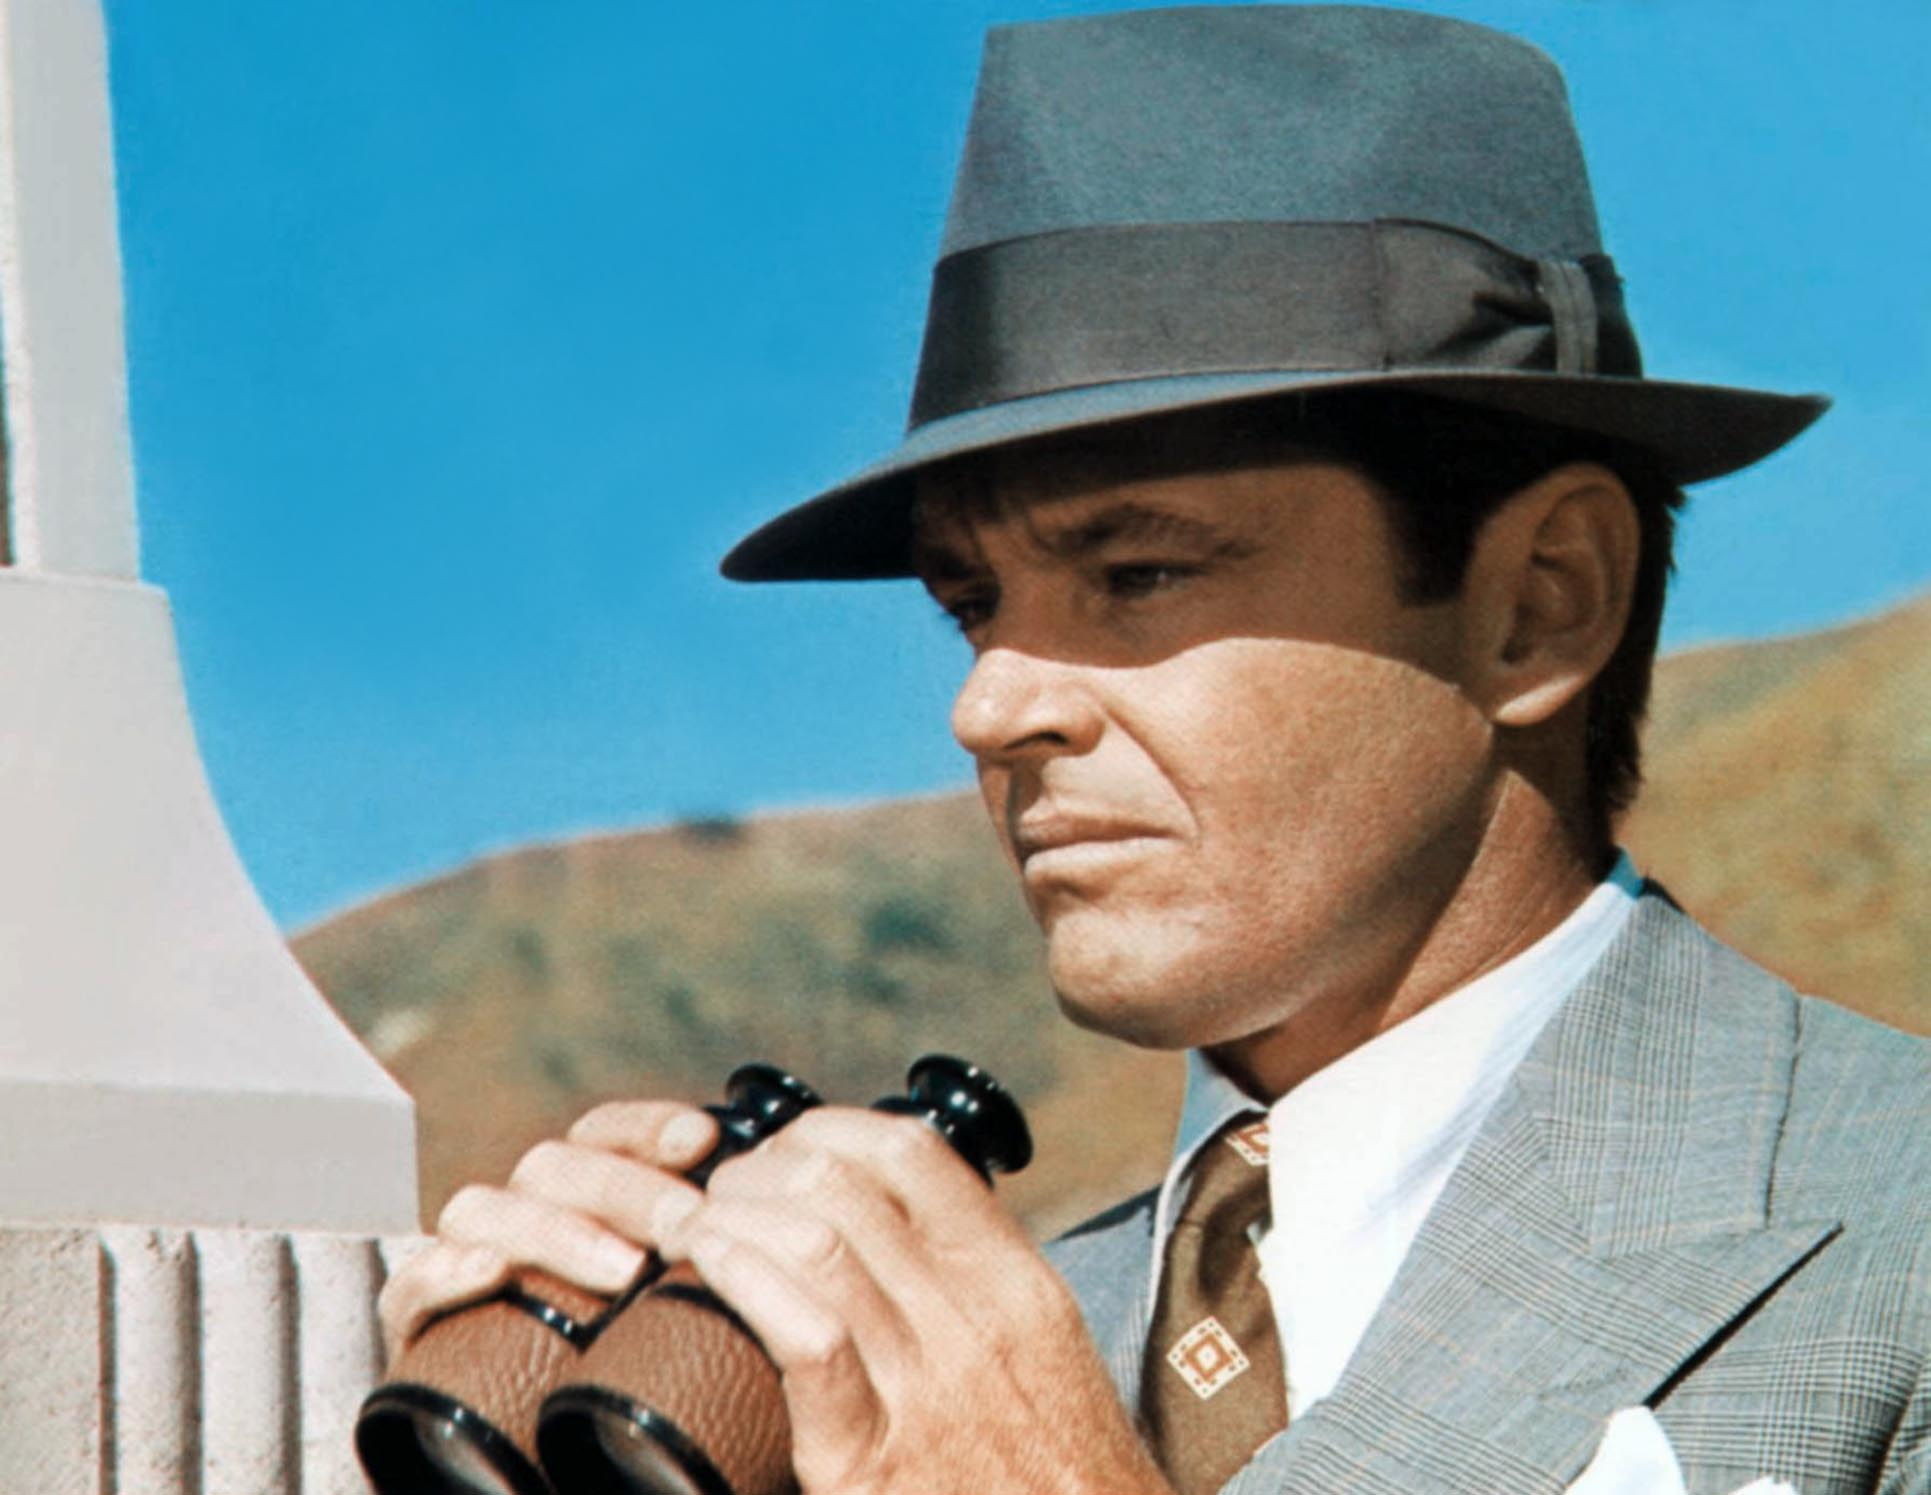 David Fincher to Produce 'Chinatown' Prequel Series for Netflix with Robert Towne